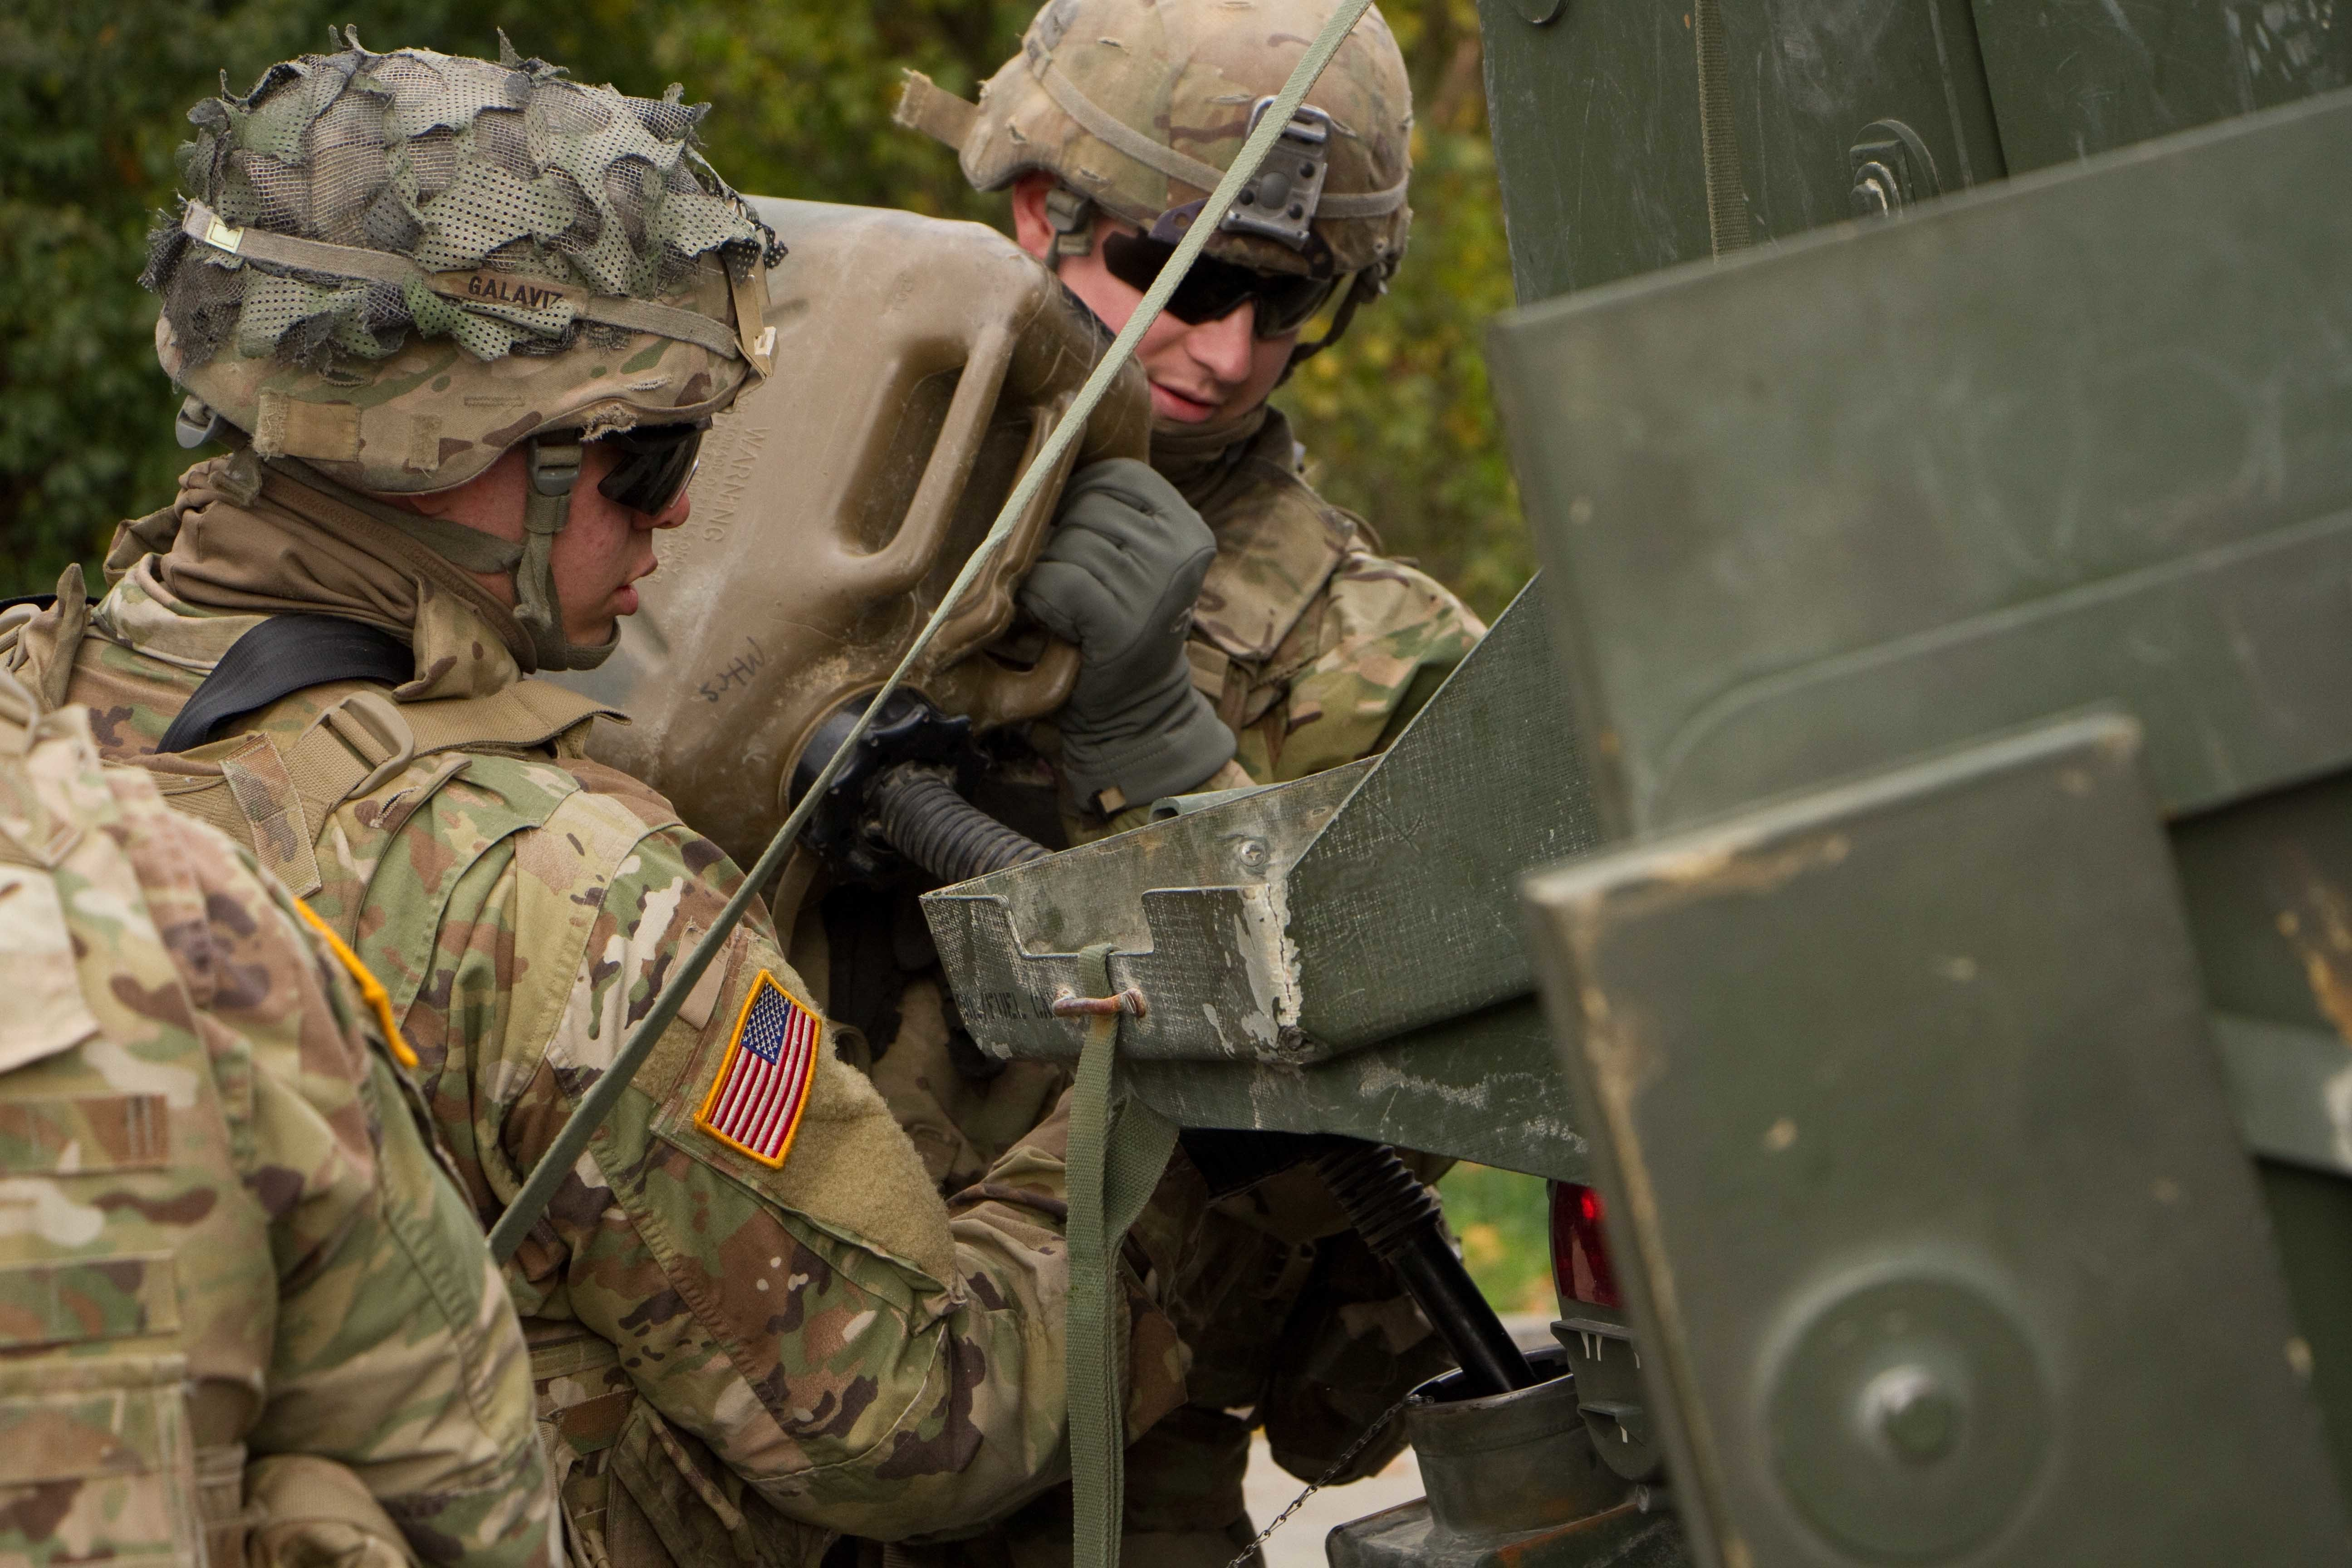 Soldiers assigned to 3d Squadron, 2d Cavalry Regiment, U.S. Army, refuel their Stryker Combat vehicle at a rest stop in Germany Oct. 11, 2017 during a 1,100 km road march from Rose Barracks, Germany to Orzysz, Poland. The Squadron with elements from Field Artillery Squadron, 2CR, the Regimental Engineer Squadron, 2CR and the Balaklava Squadron, Light Dragoons Regiment, British Army, are heading to Poland to be part of Battle Group Poland in support of NATO's enhanced Forward Presence initiative.